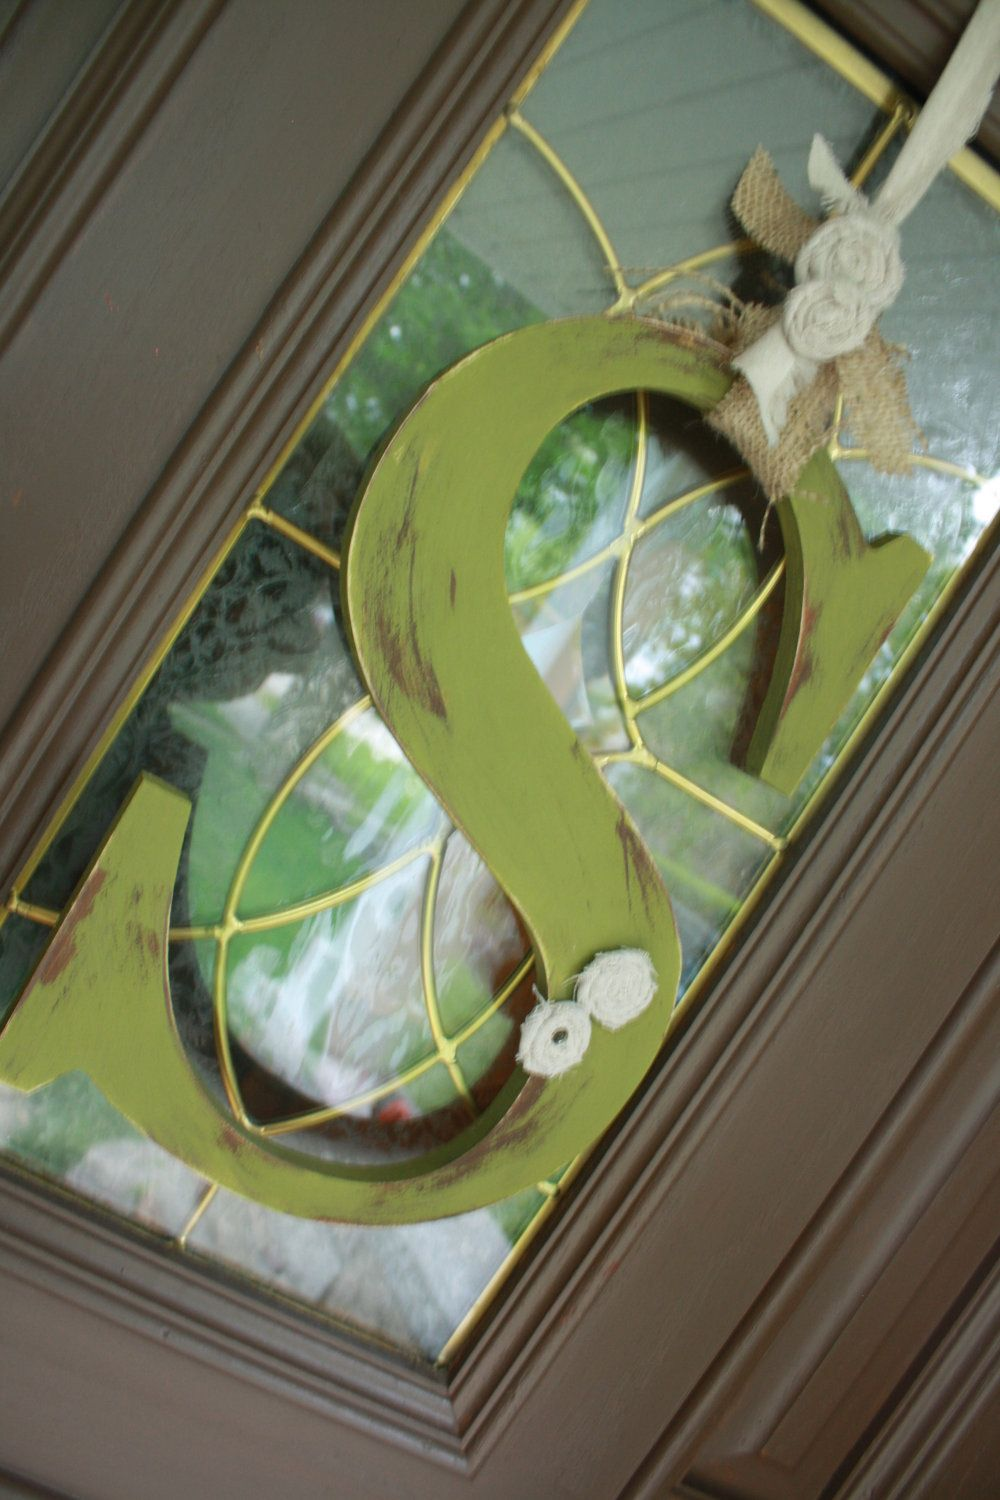 Door initial instead of a wreath - love the initial idea!